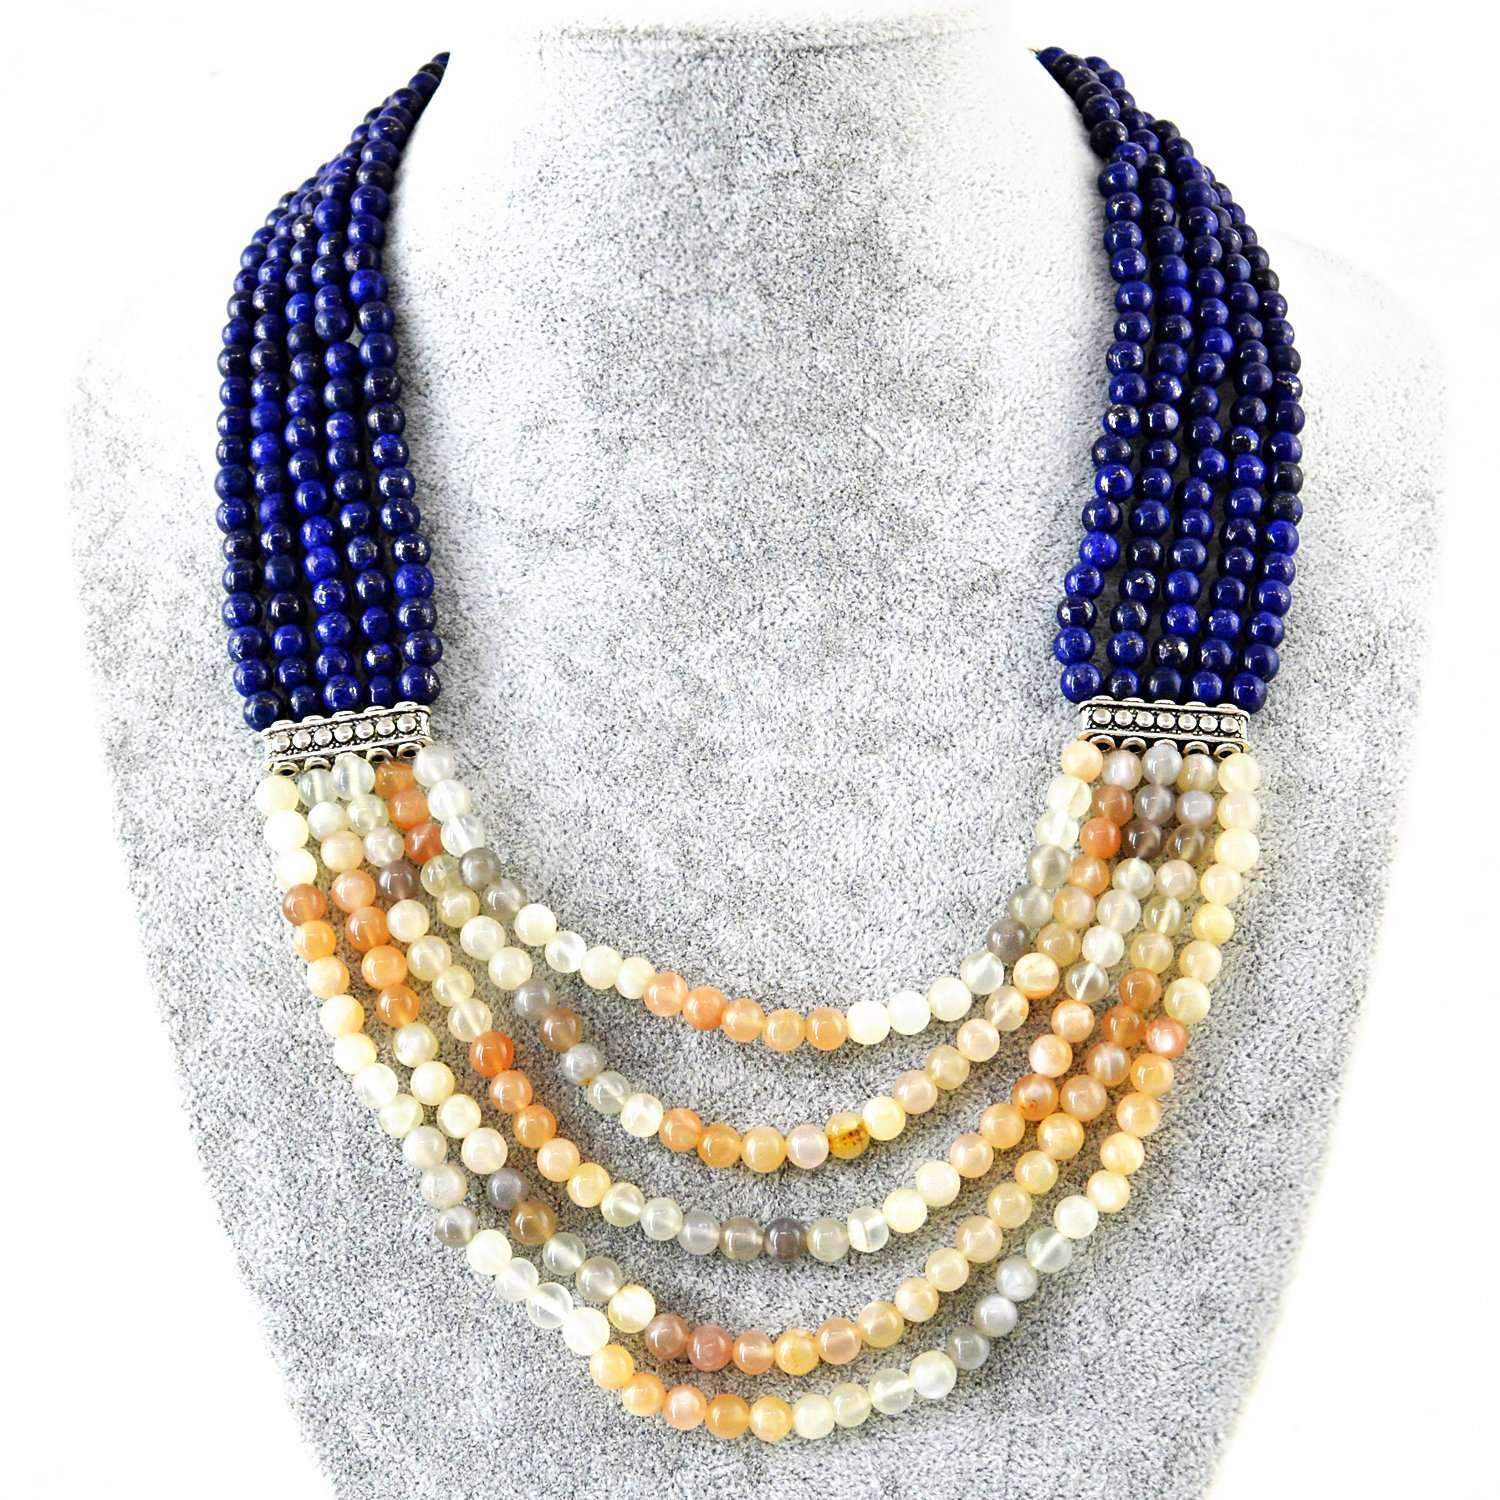 gemsmore:Natural Blue Lapis Lazuli & Multicolor Moonstone Necklace 5 Line Round Beads